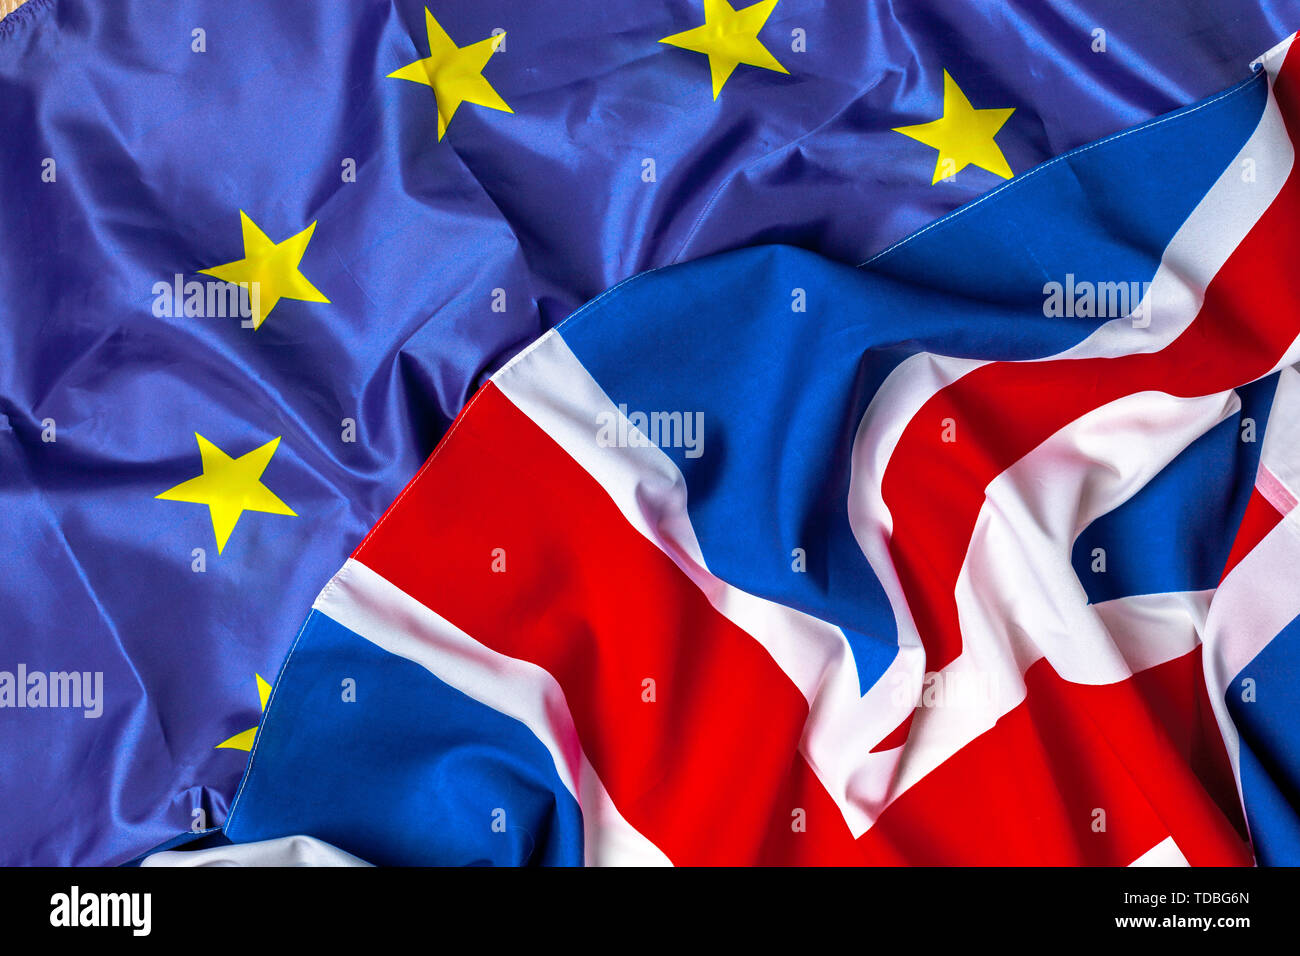 Flags of the United Kingdom and the European Union - Stock Image